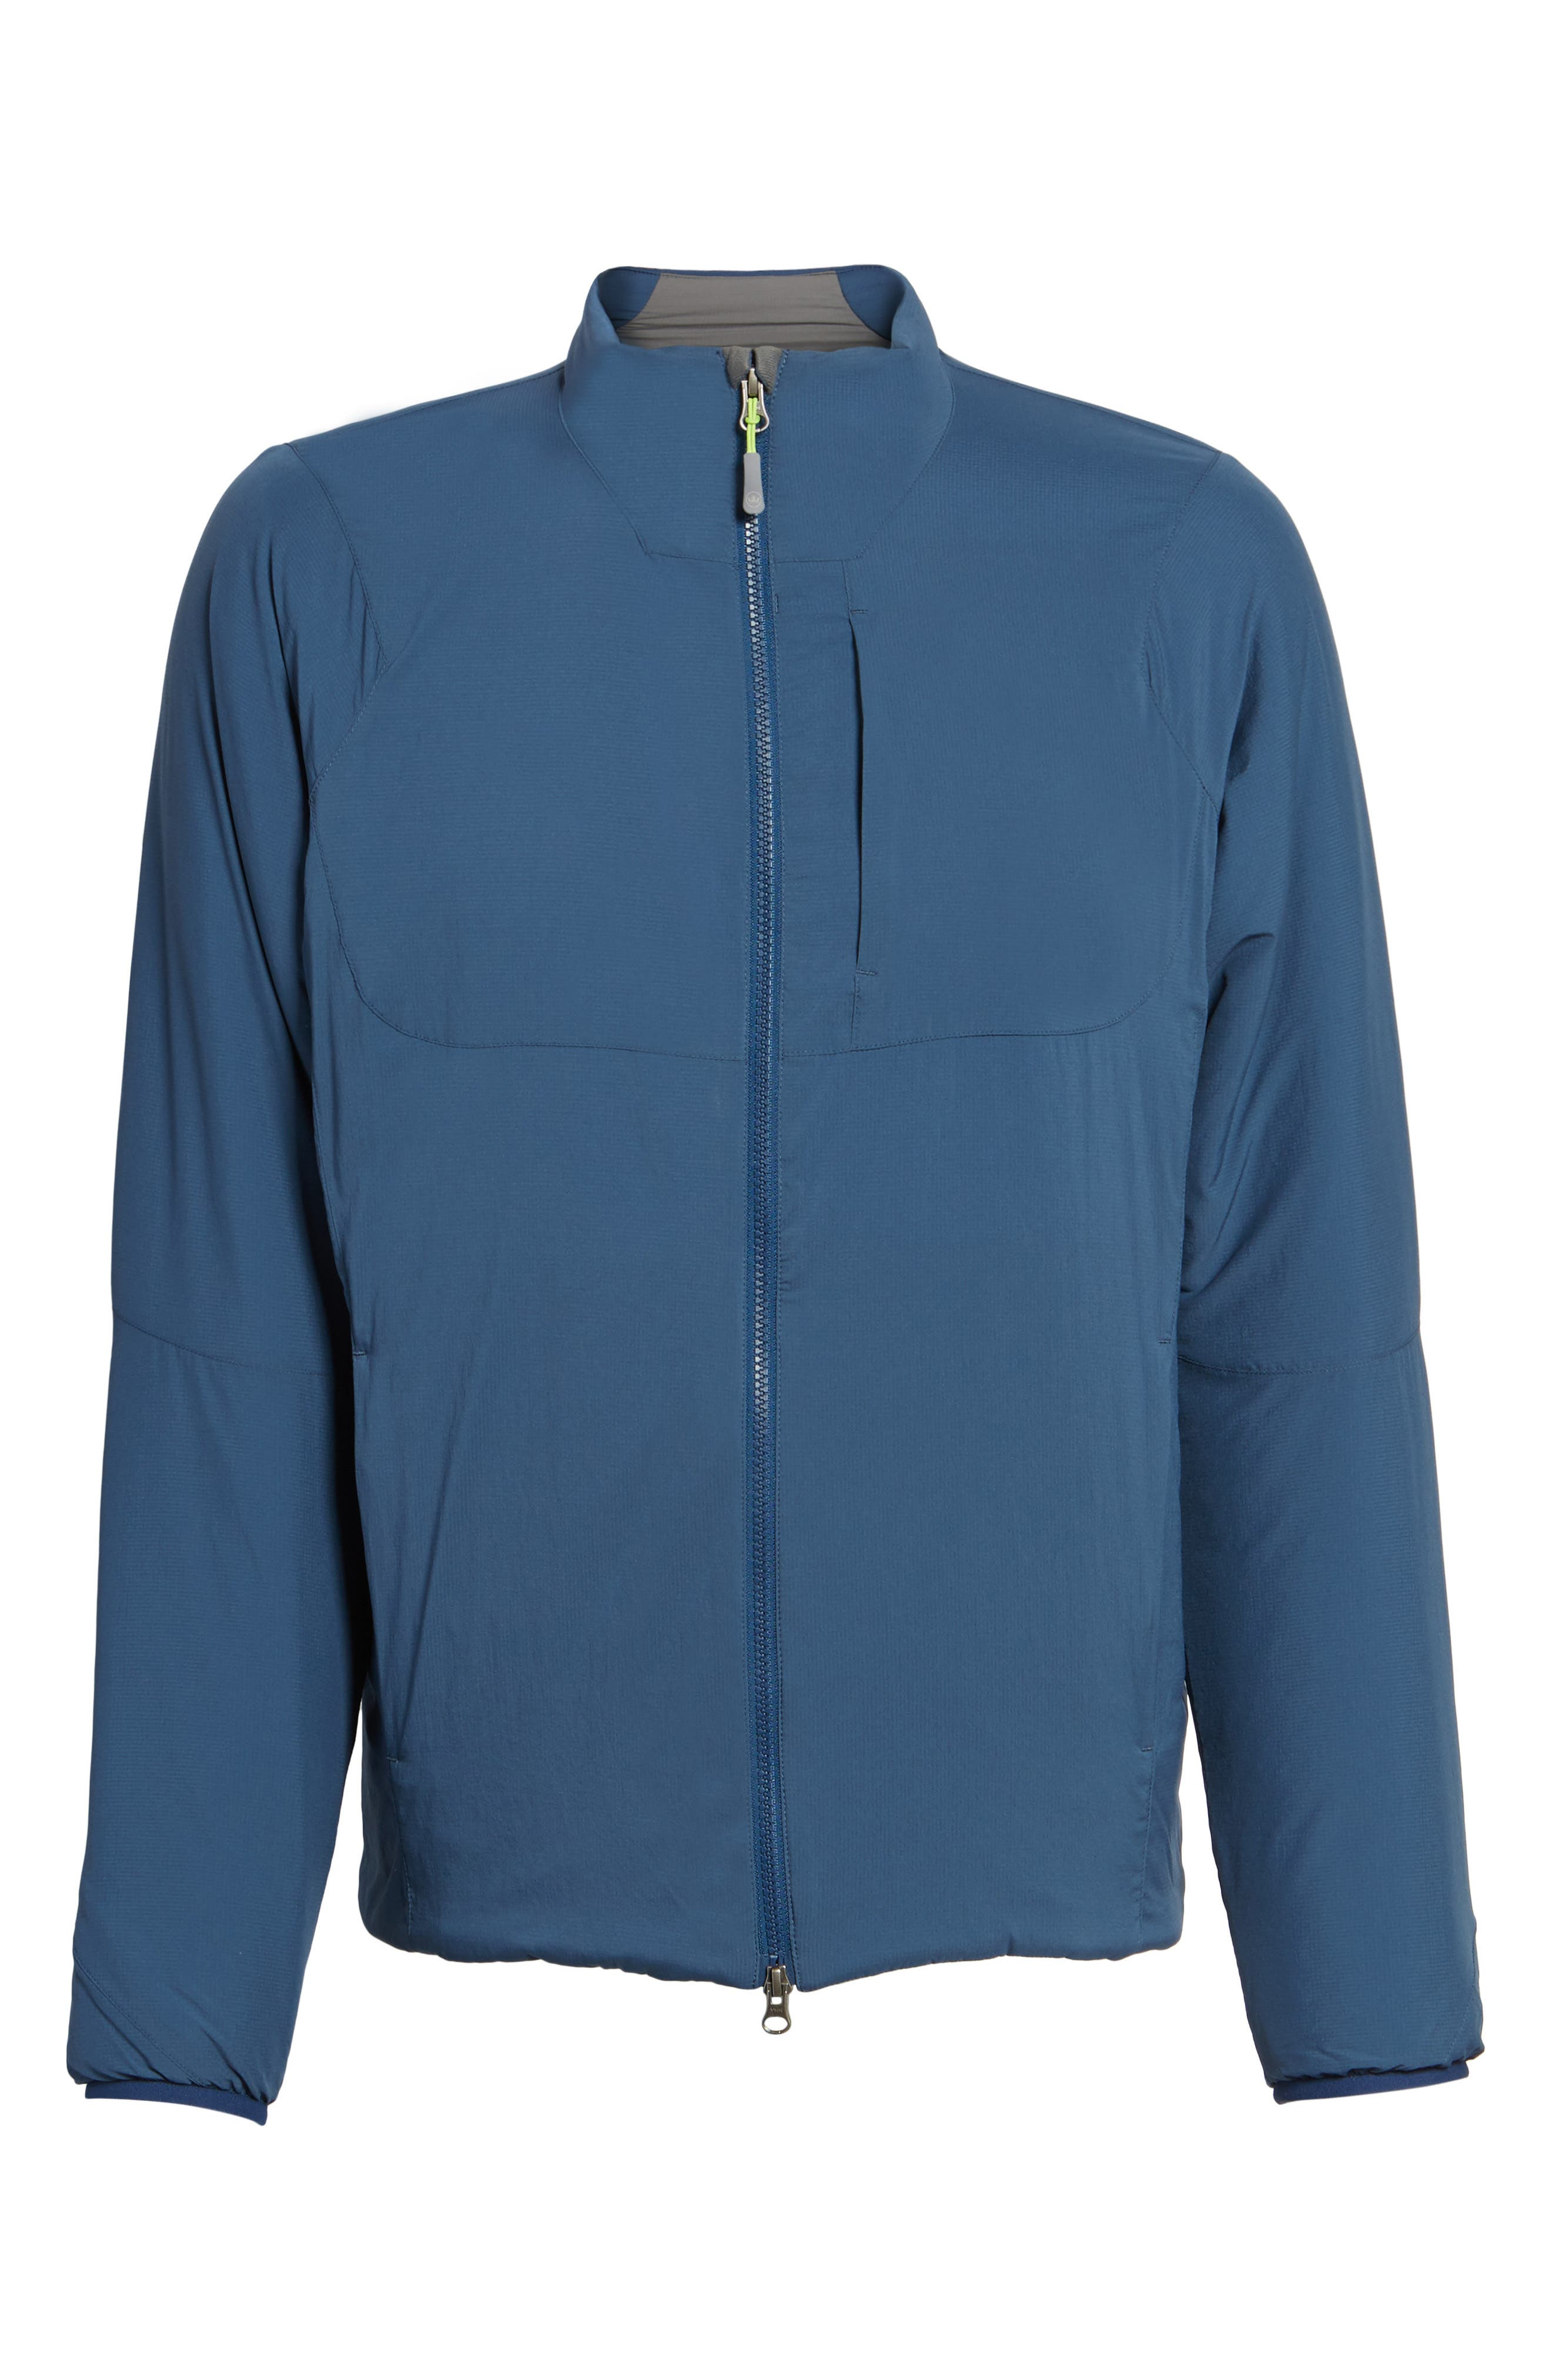 Bozeman Stretch Puffer Jacket,                             Alternate thumbnail 5, color,